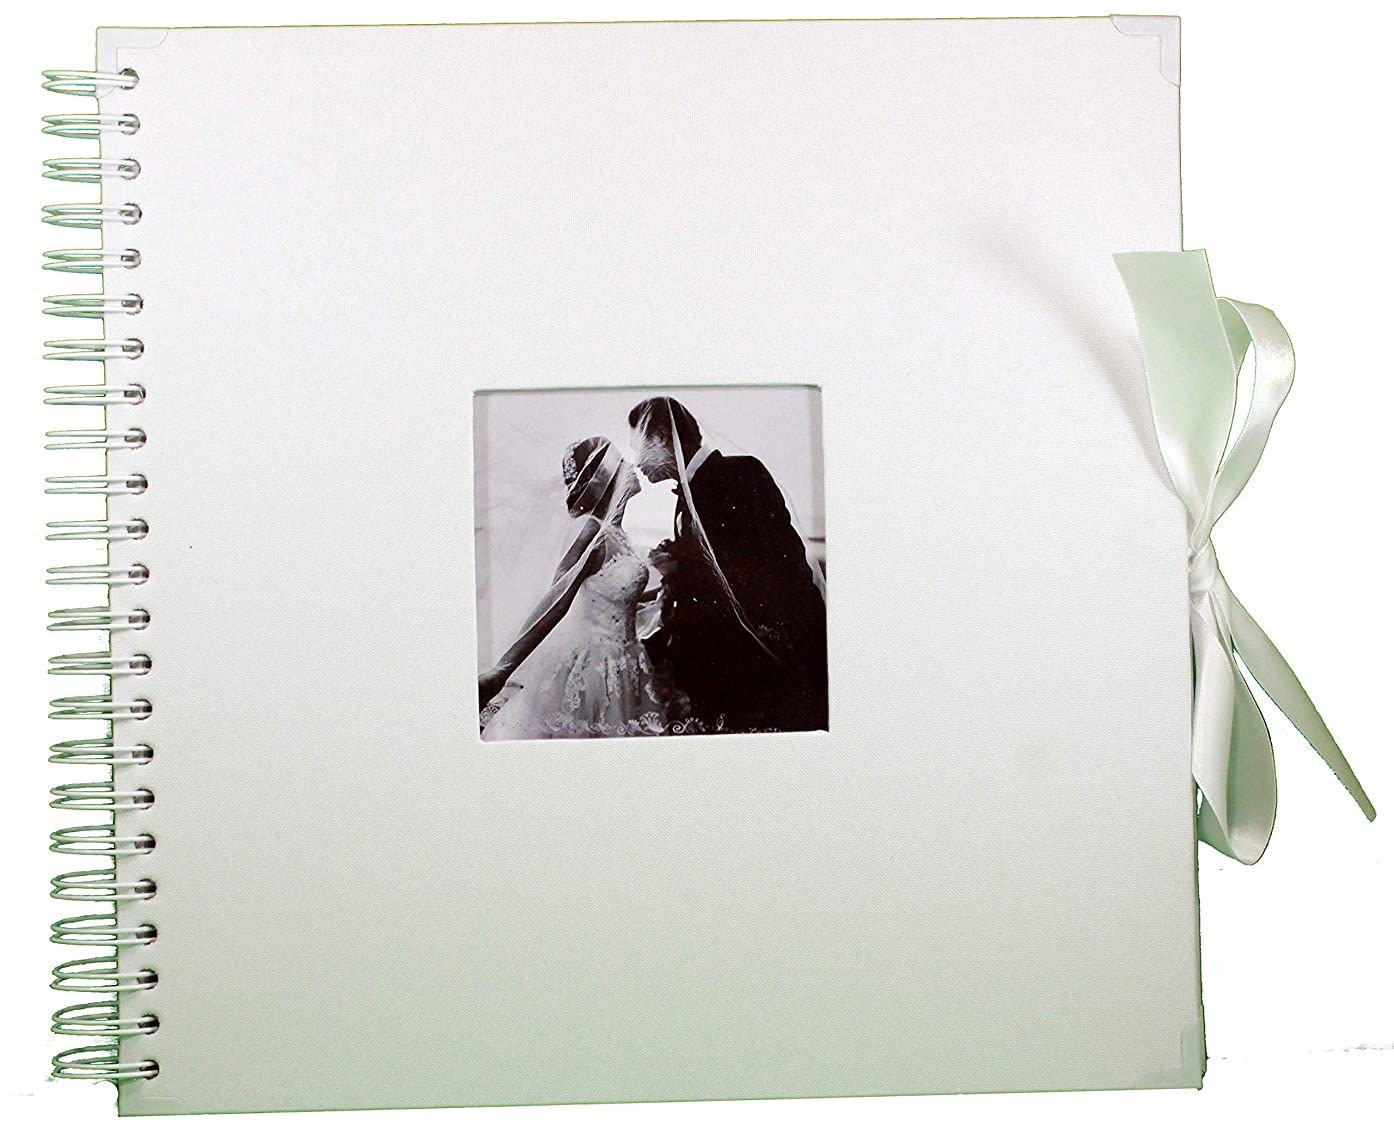 White Scrapbook Wedding Photo Album - 80 DIY 10x10 Pages with Cover Photo Pocket and Corner Protectors - Silk Ribbon - Craft Paper for Guest Book, Honeymoon, Anniversary, or Valentine's Day Gift